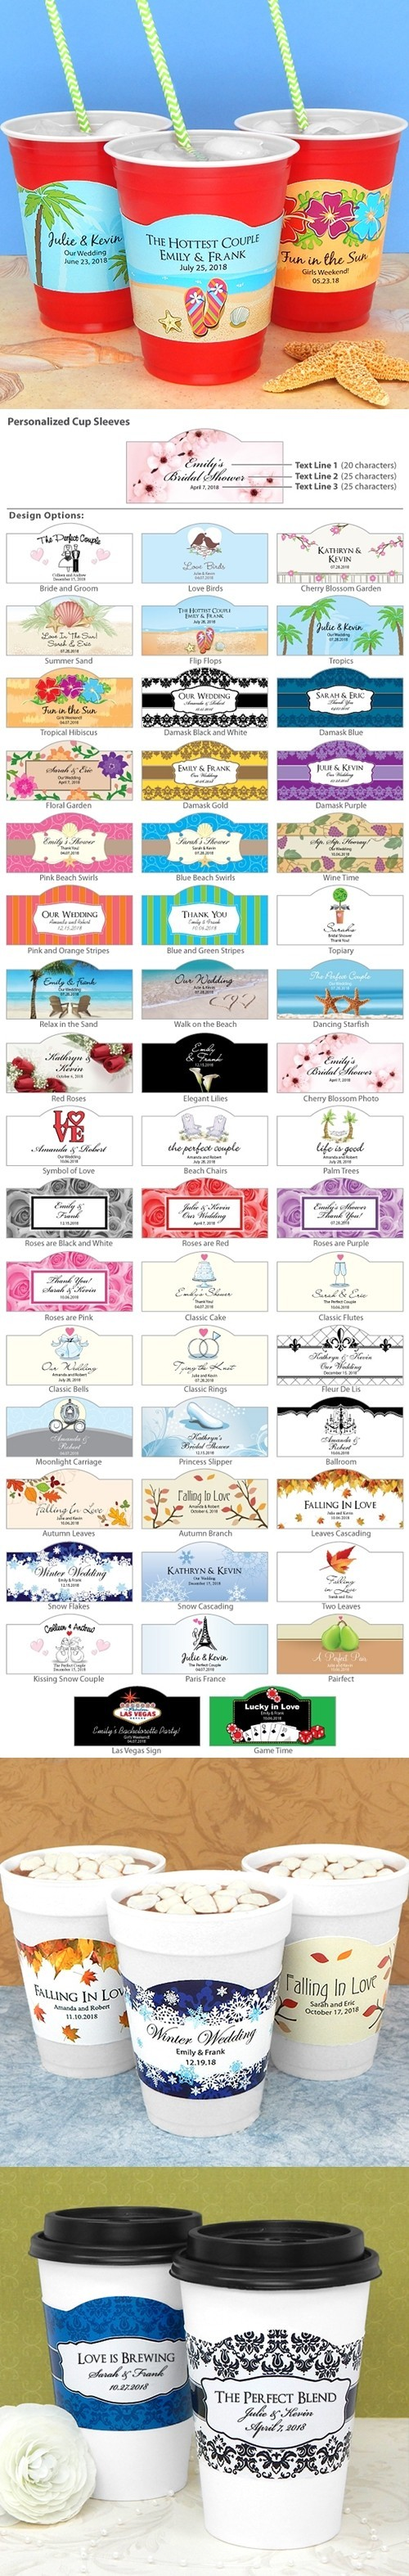 Ducky Days Personalized Cup Sleeves with Wedding Designs